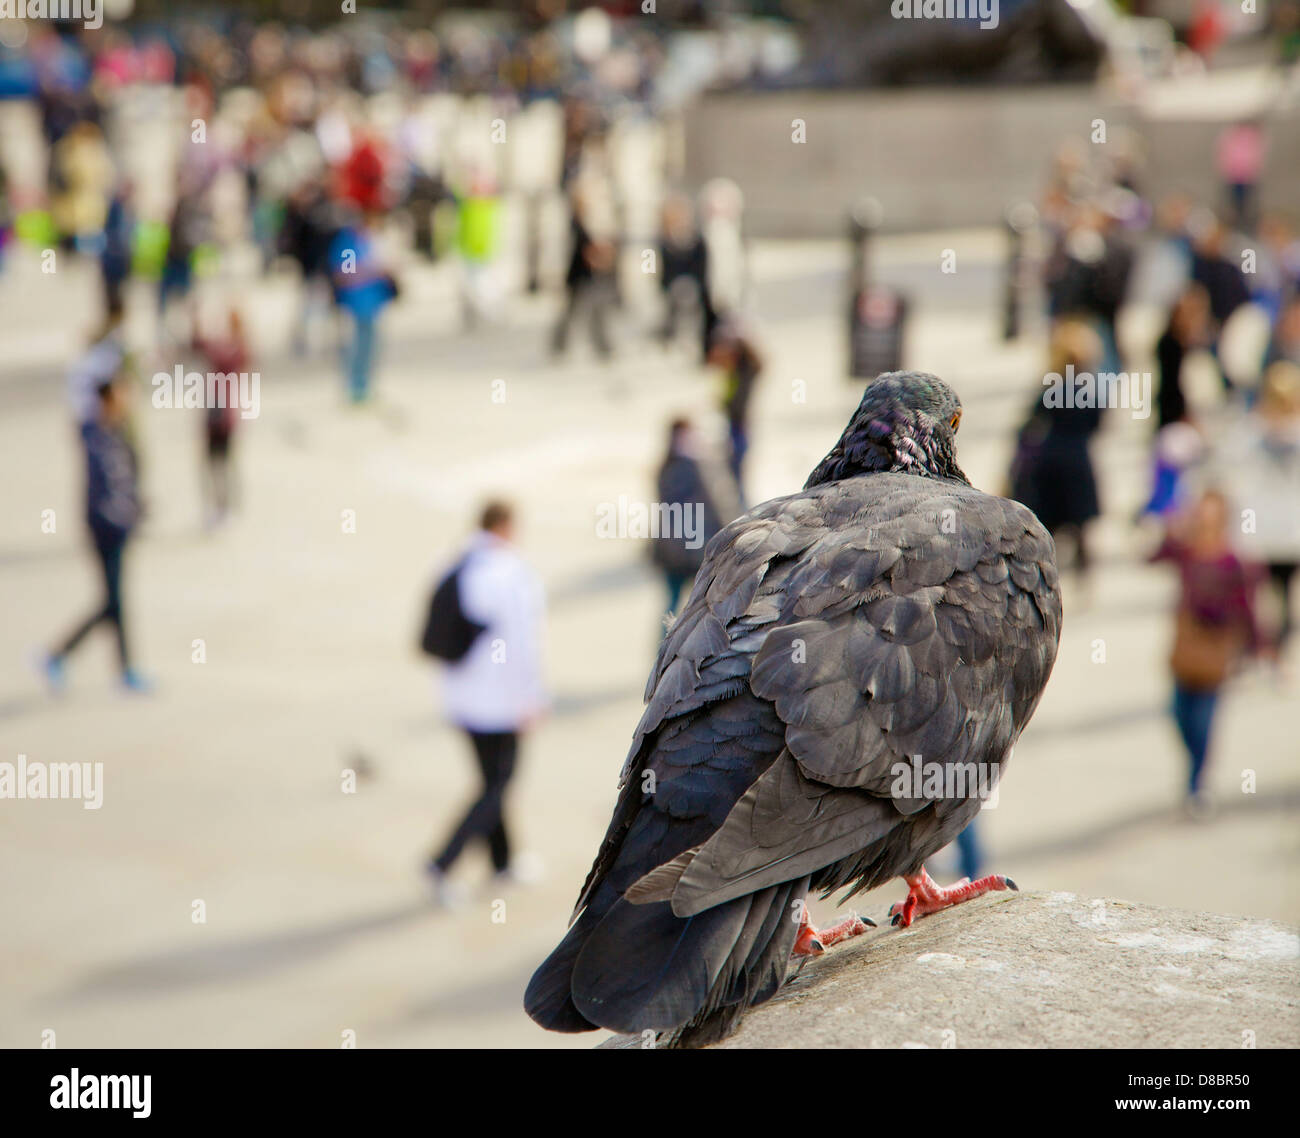 A close up of a pigeon at Trafalgar Square observing the crowds, London, UK. - Stock Image